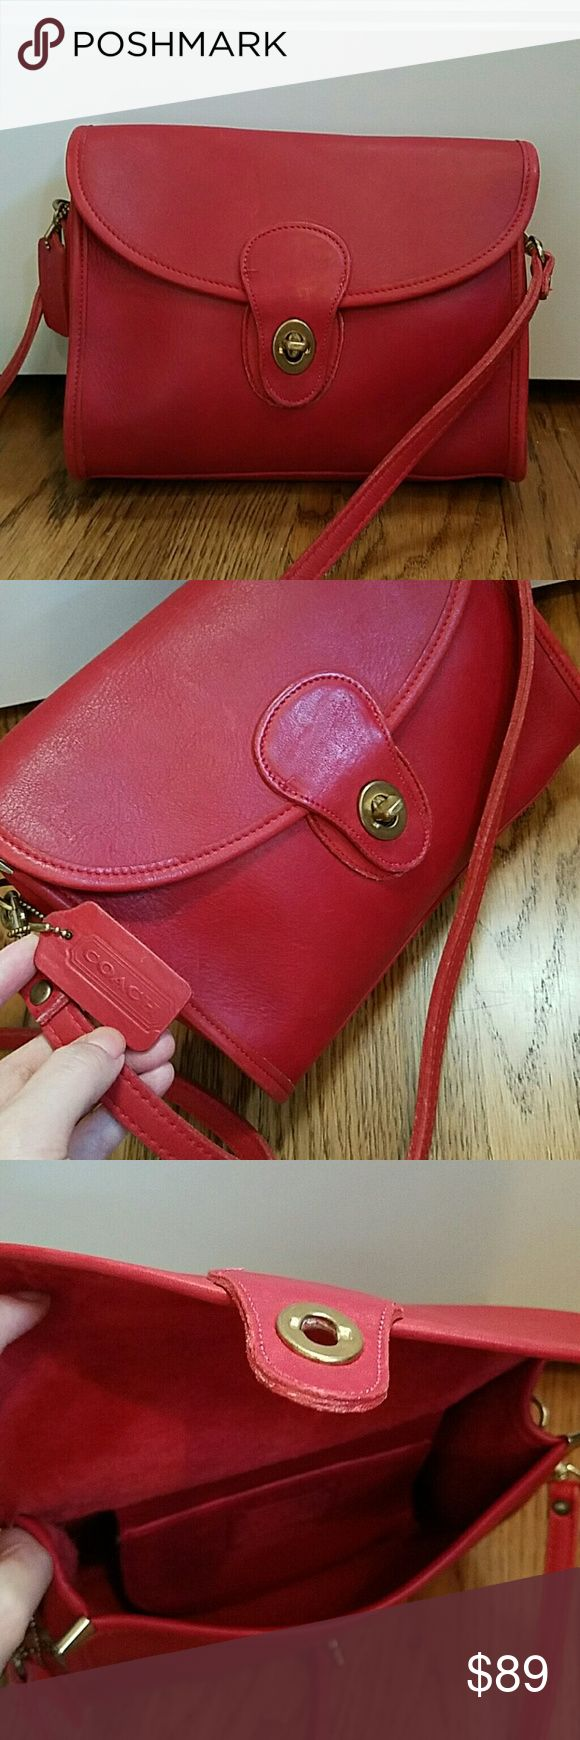 """Vintage Coach Red Leather Crossbody bag USA made Vintage Coach Red Leather Handbag Crossbody Beautiful red leather Preowned, very good vintage condition Measurements: 9"""" long, 7""""tall, 2""""wide, 22"""" Strap Genuine Leather Made in the United States Any questions pls. feel free to contact me.  Thanks for looking! Coach Bags Crossbody Bags"""